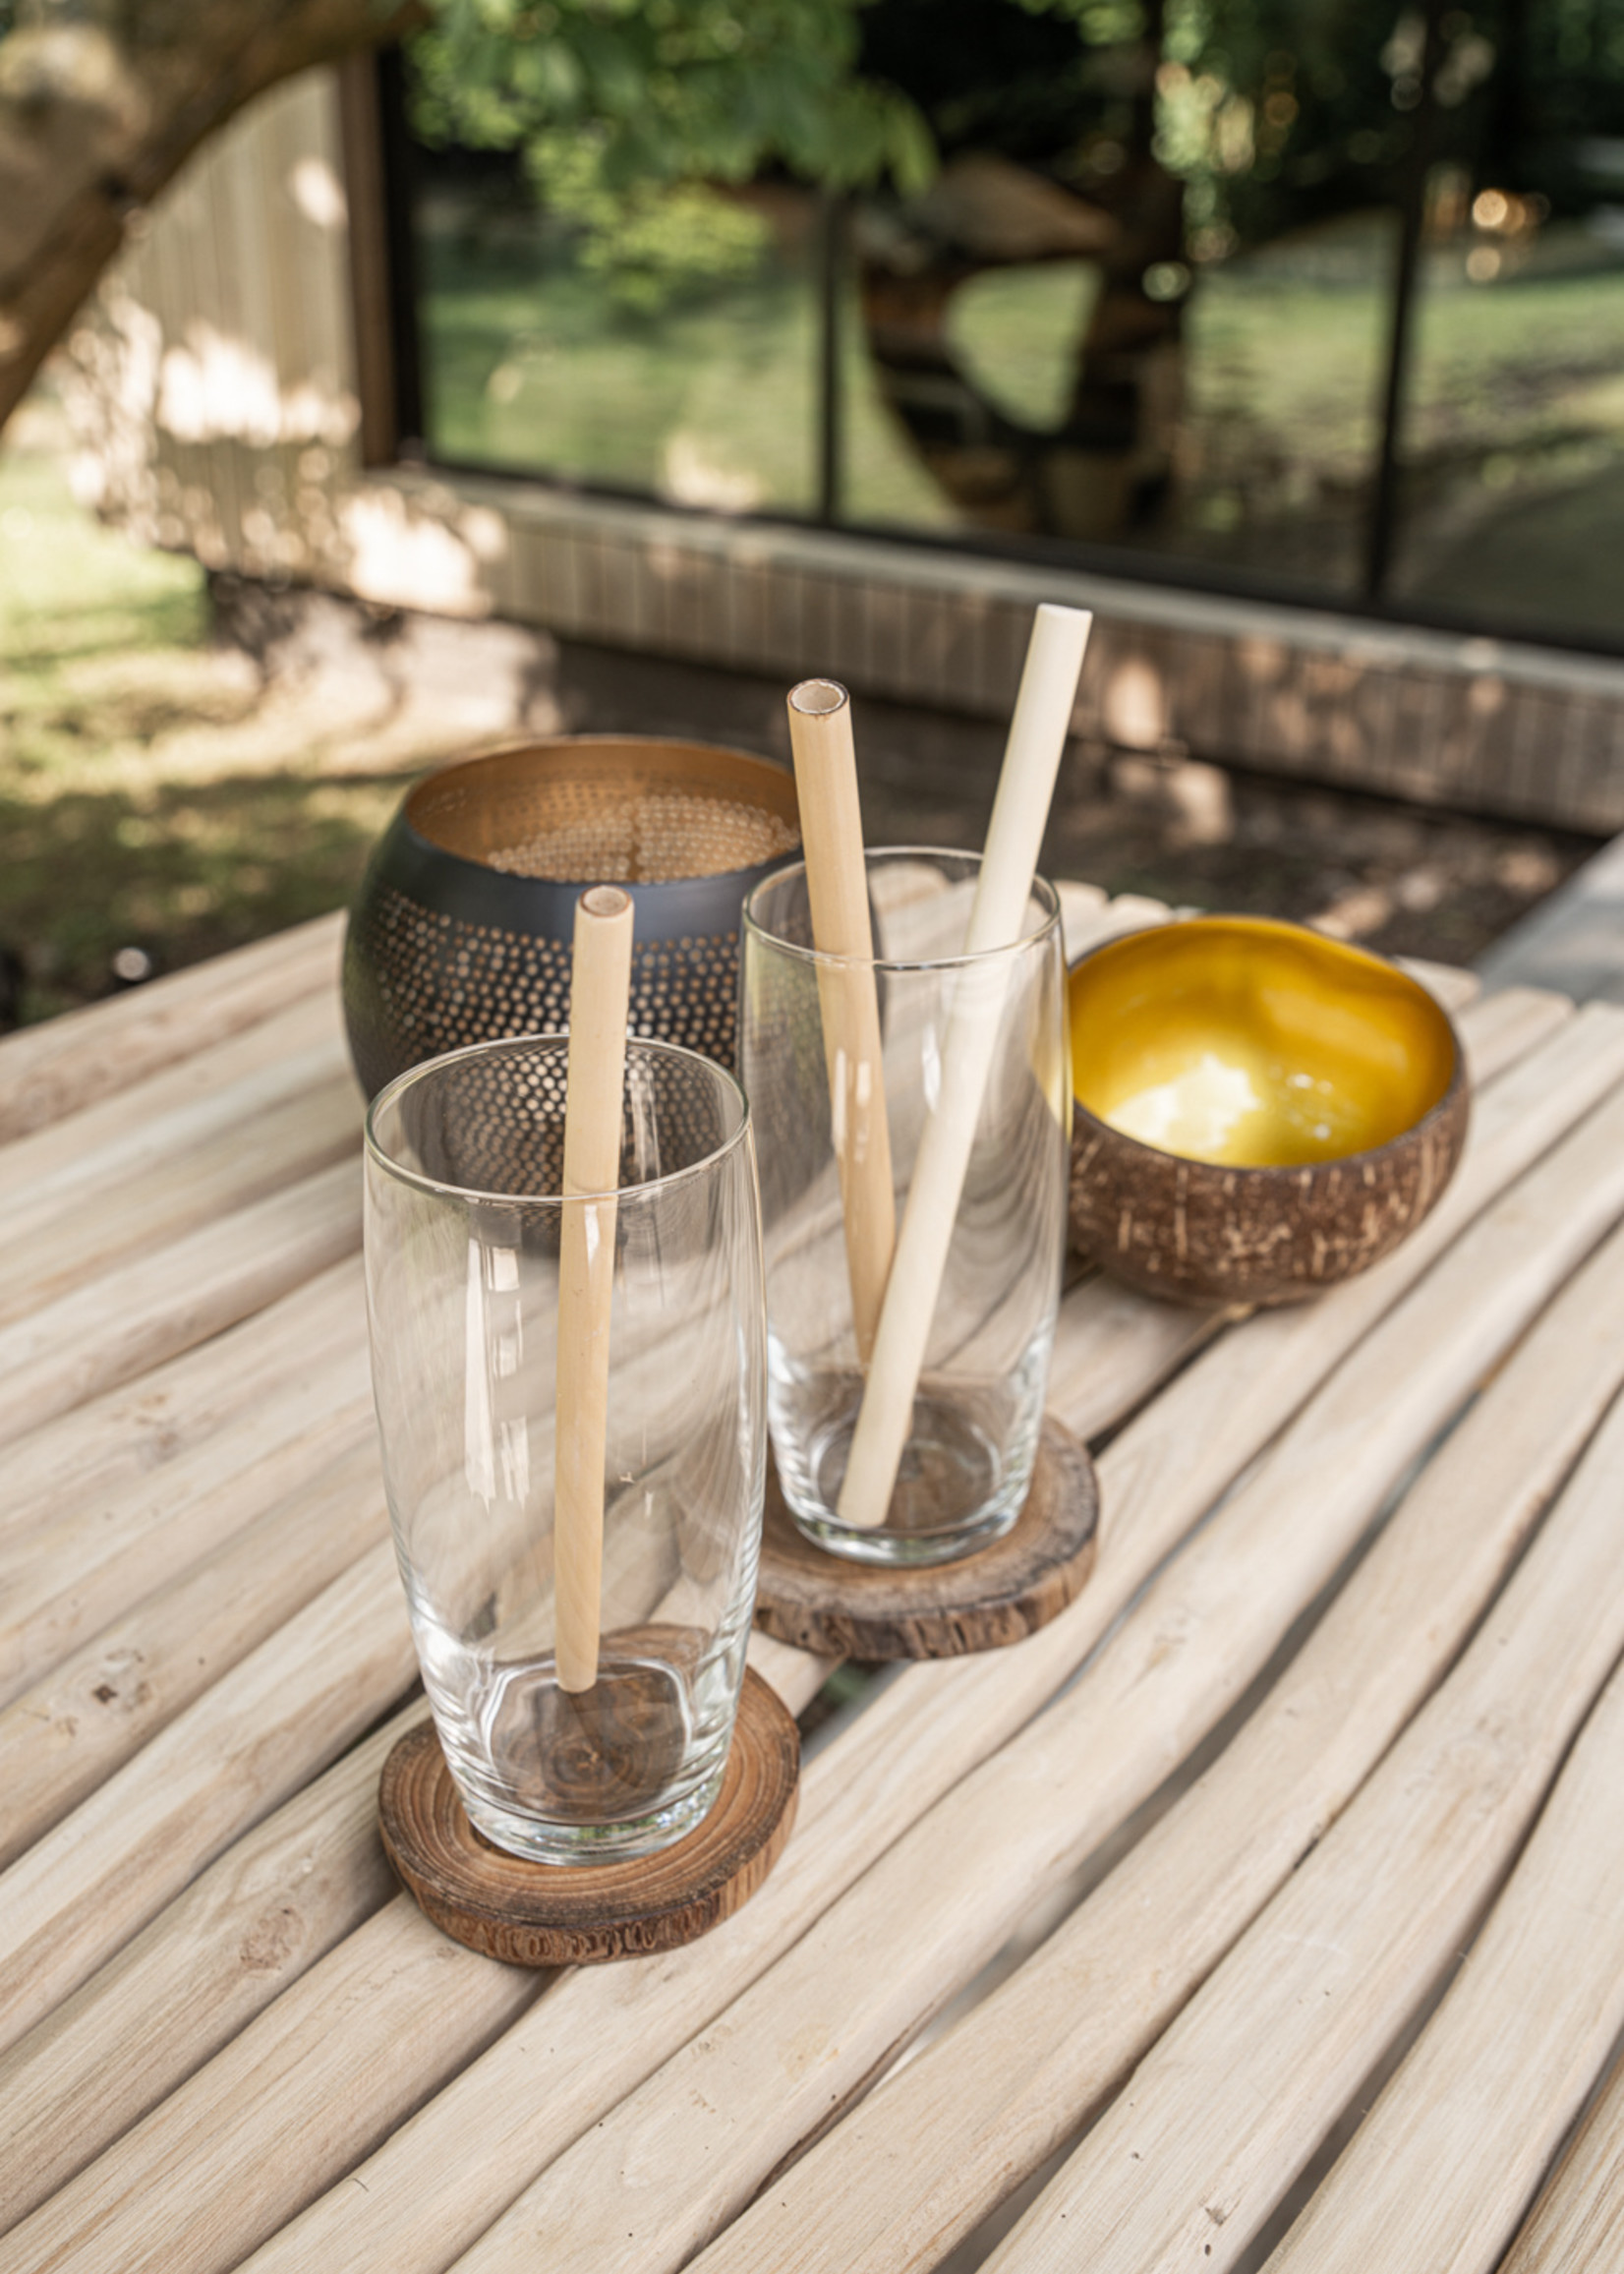 The Bamboo Straws - Set of 10 With Cleaning Brush